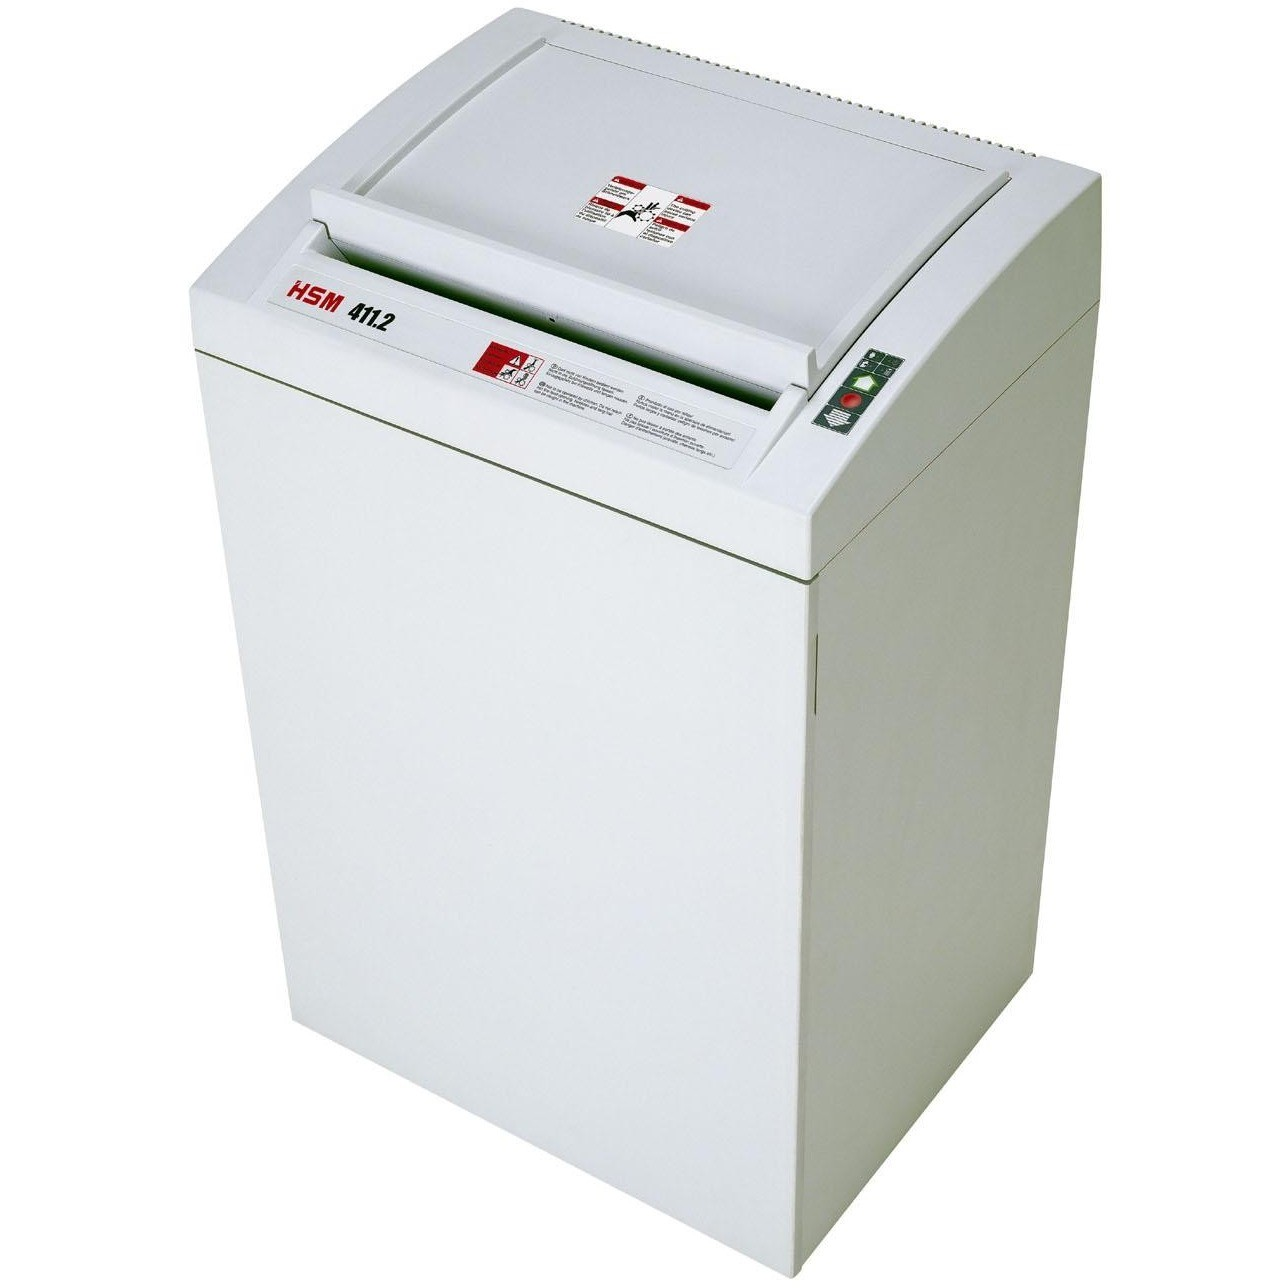 HSM15644 HSM Classic 411.2 HS L6 Cross-Cut Shredder